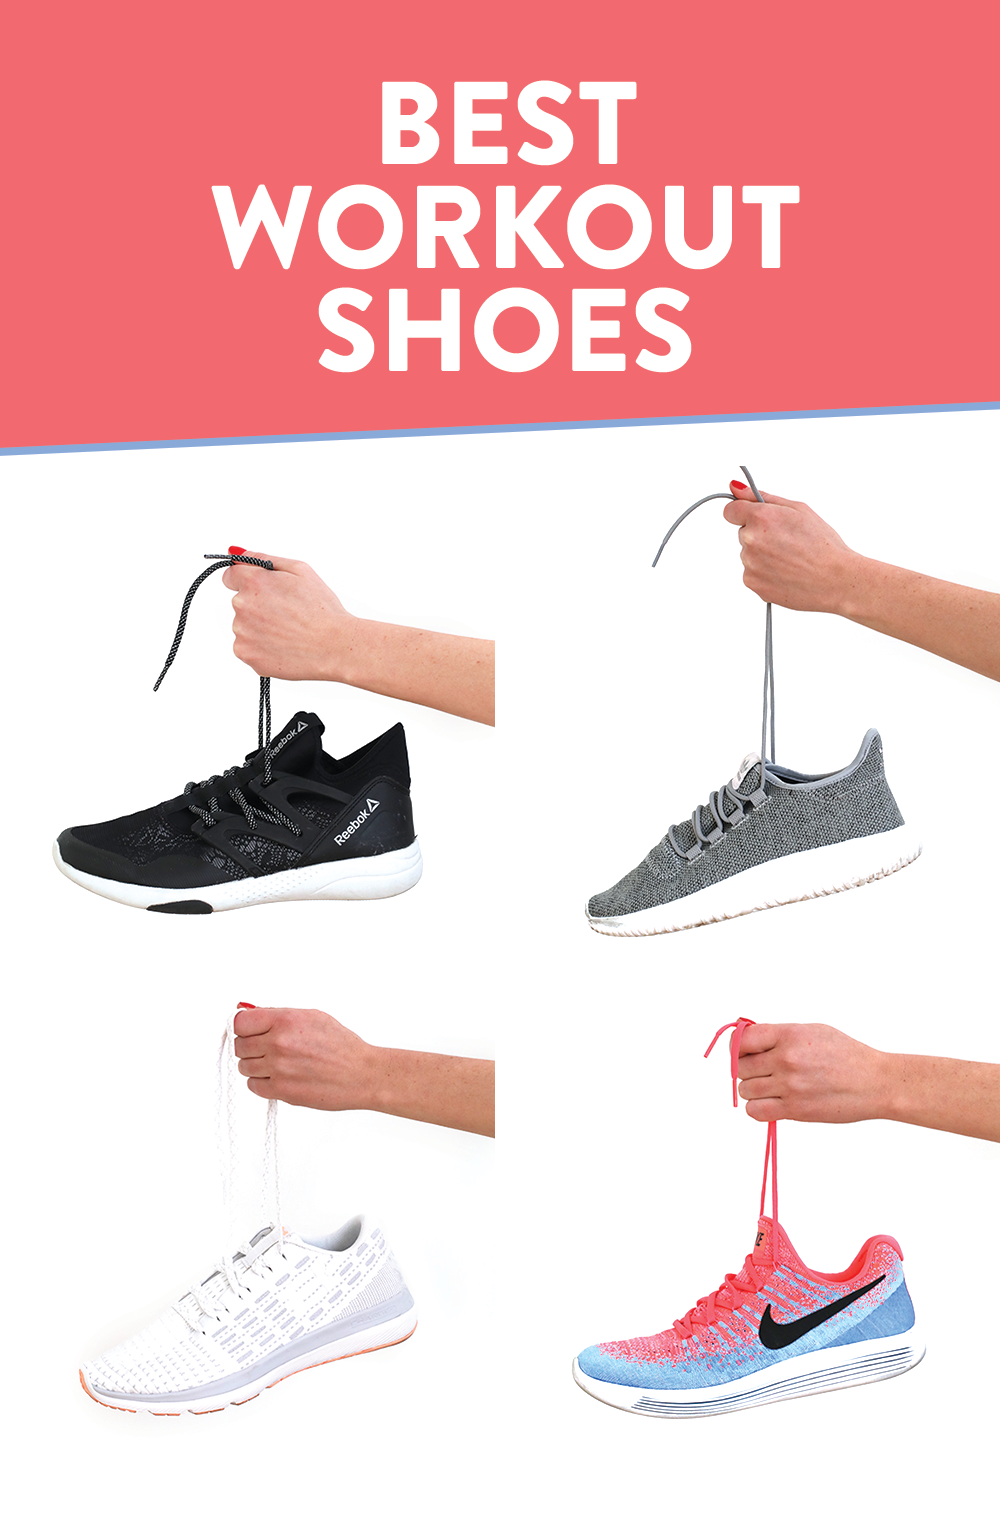 ed51746dcbd Style Friday: Best Workout Shoes - from gym to street! - Fit Foodie ...